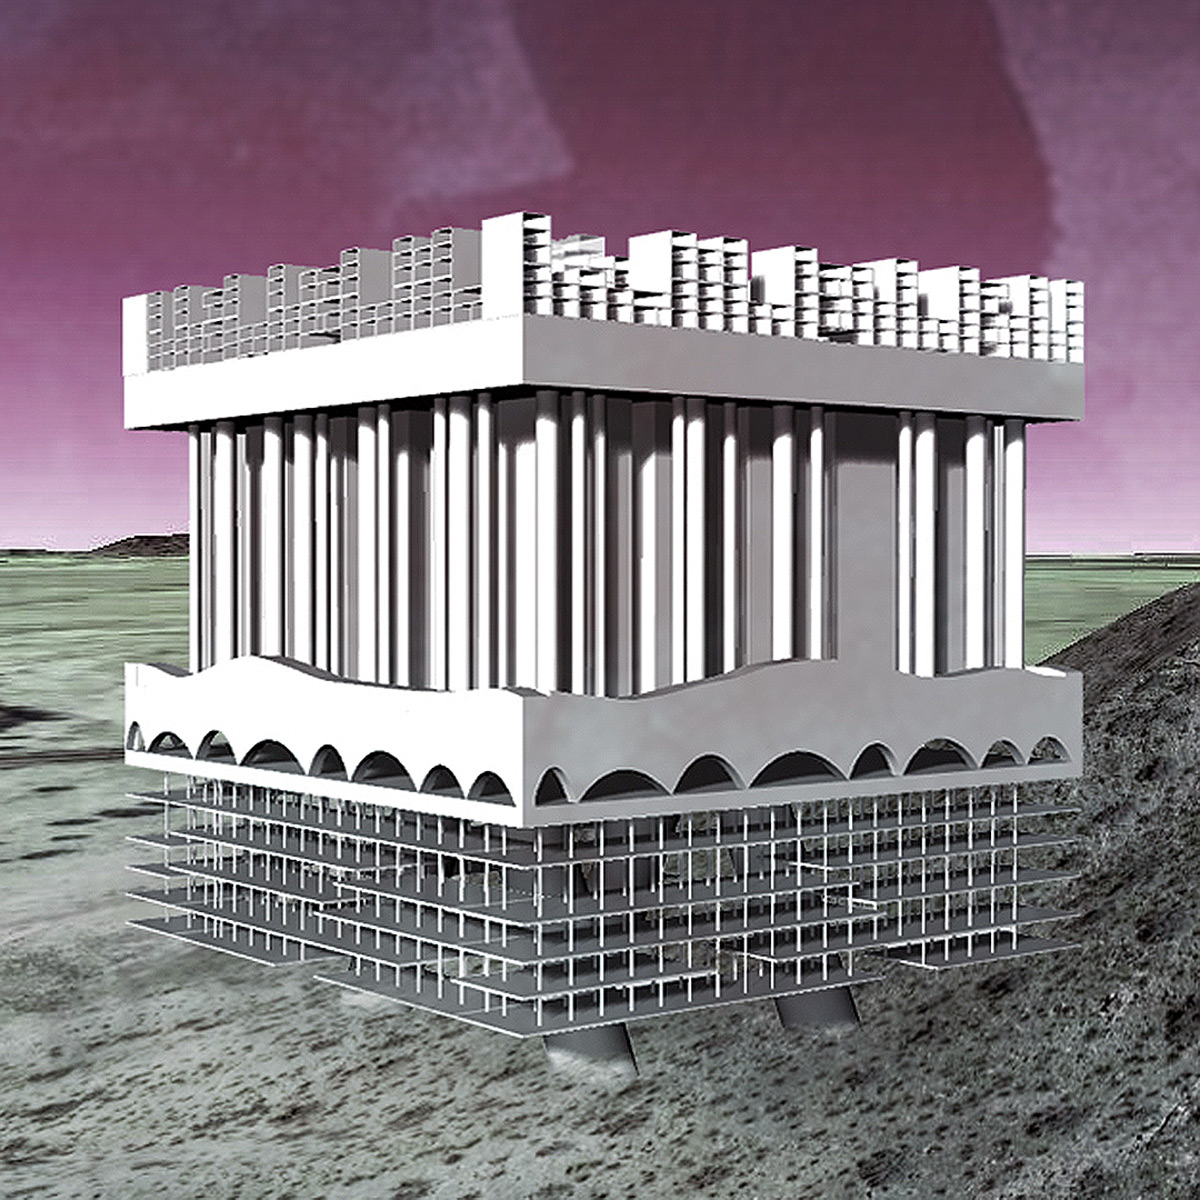 Massing perspective of a proposal for a self-sustaining community set in the desert landscape by student Monique Paulis